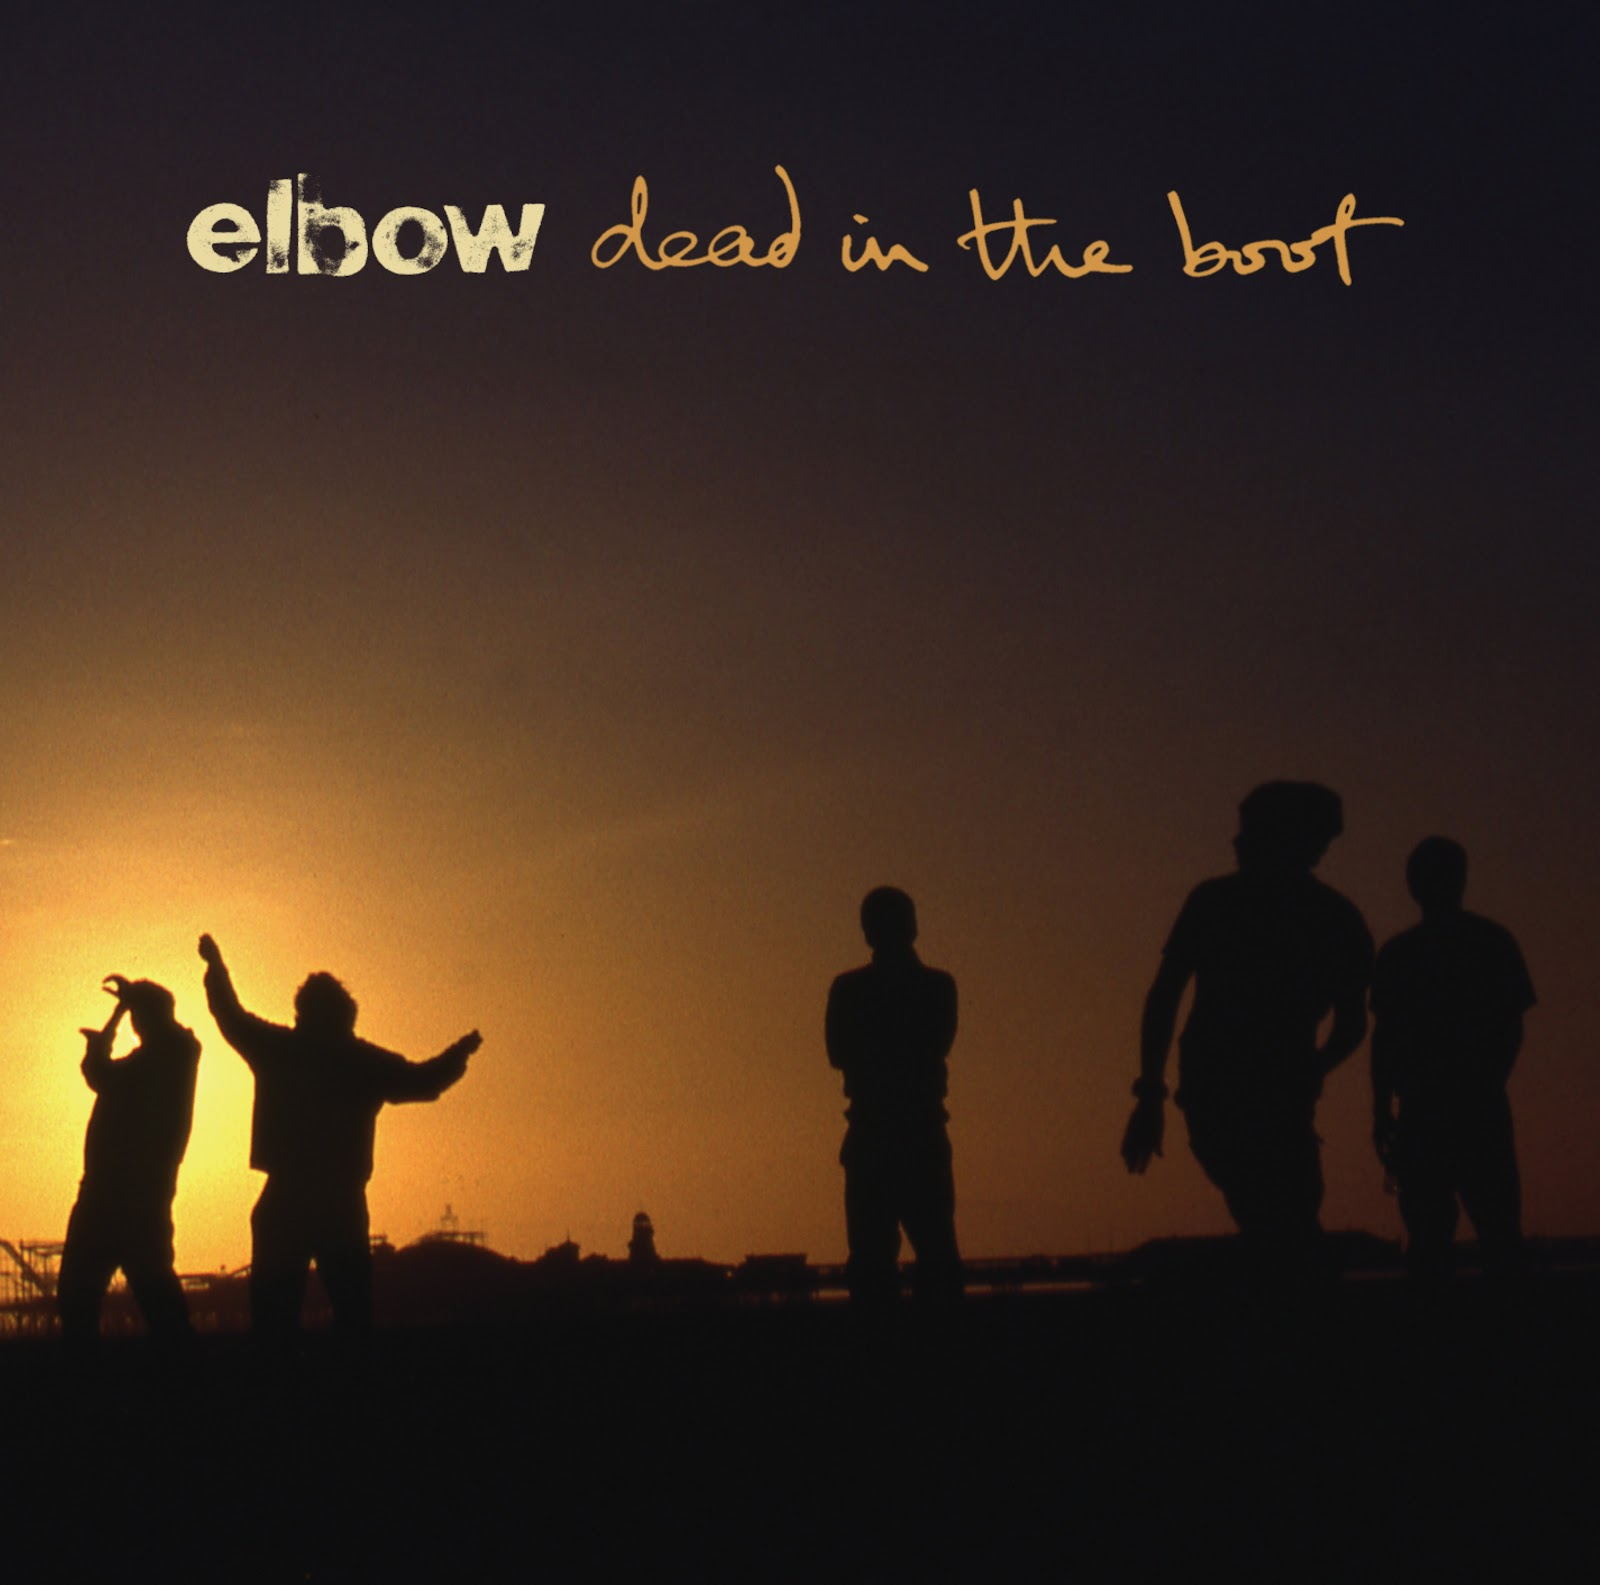 The Beat: CD REVIEW! Elbow - dead in the boot